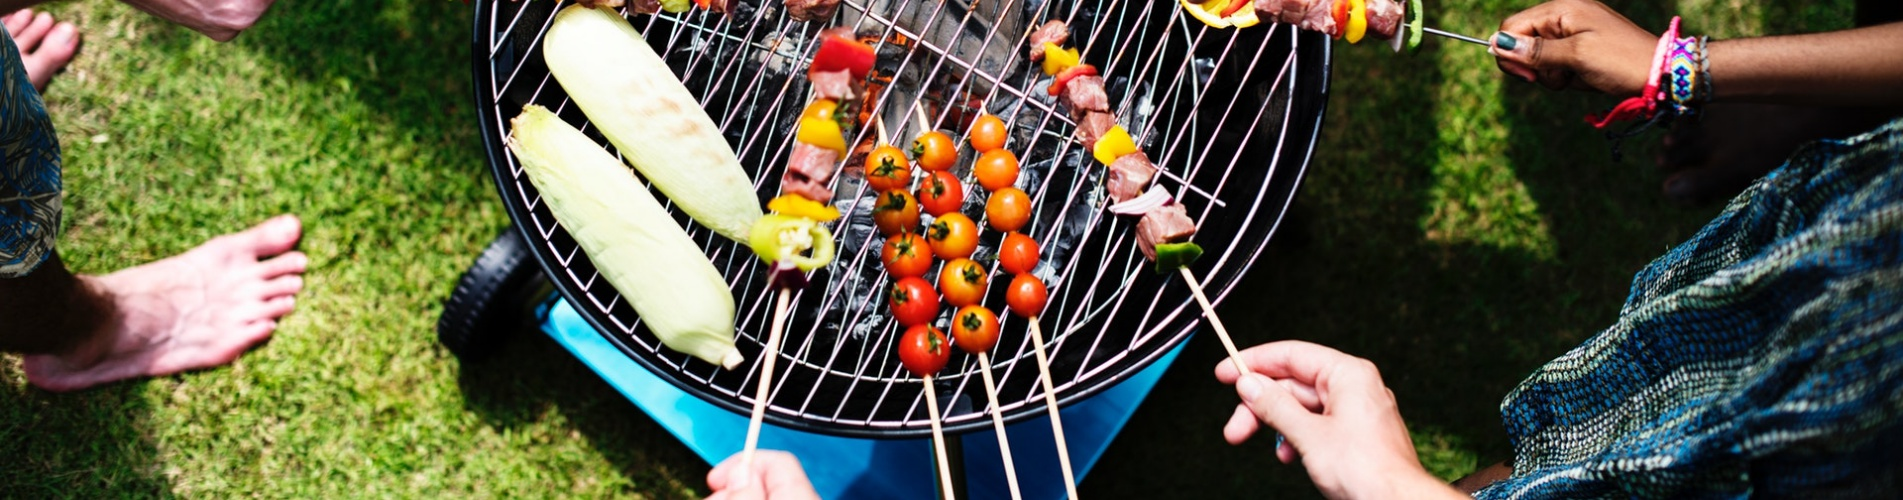 How to Throw a Heart-Healthy 4th of July Cookout